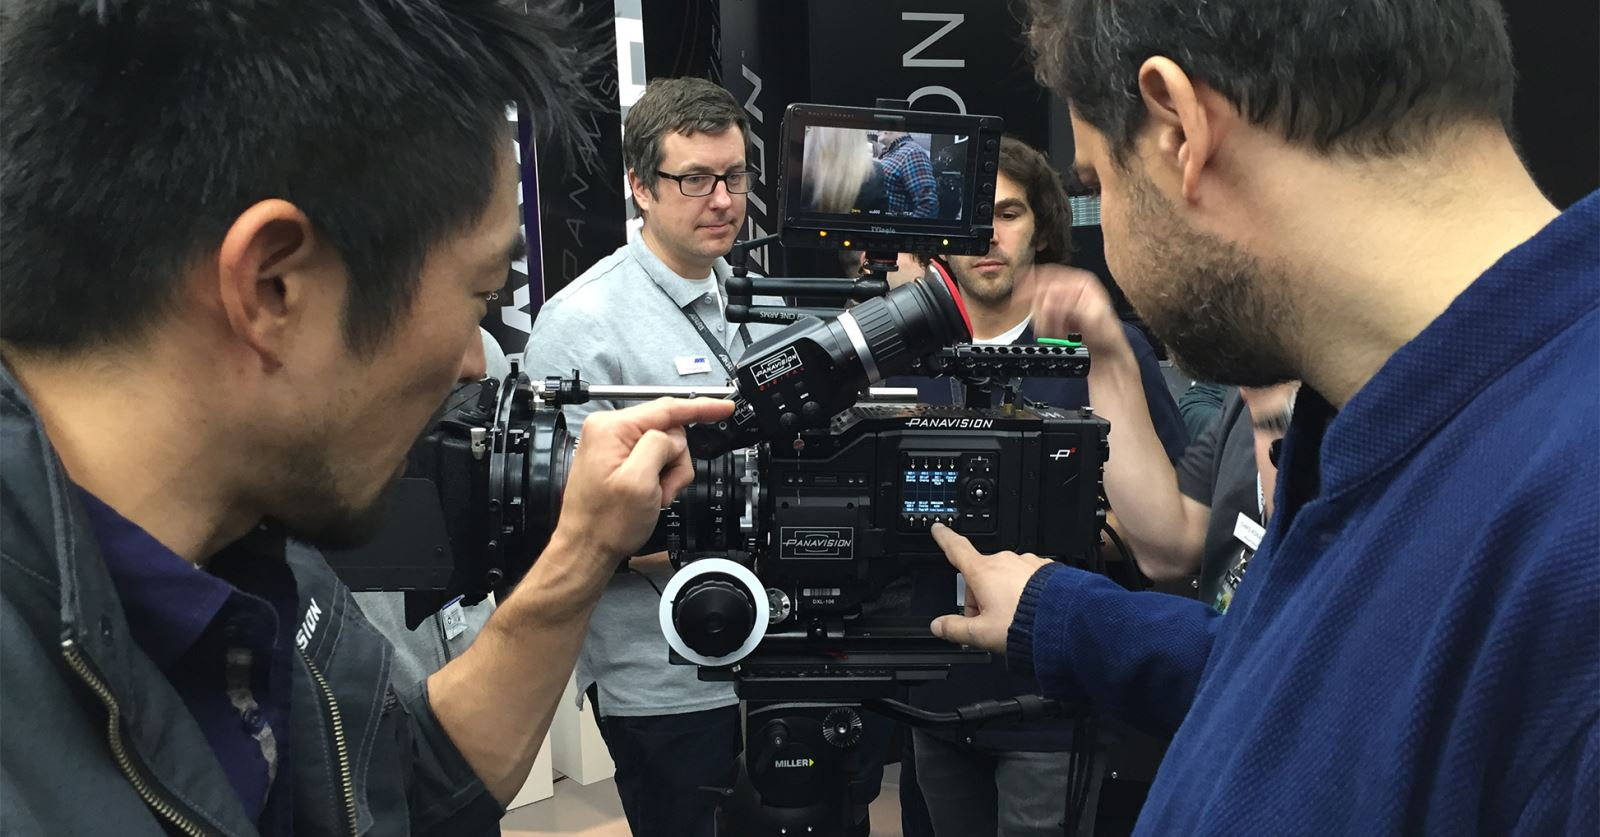 The new Millennium DXL camera from Panavision with RED body and sensor, announced at Camerimage